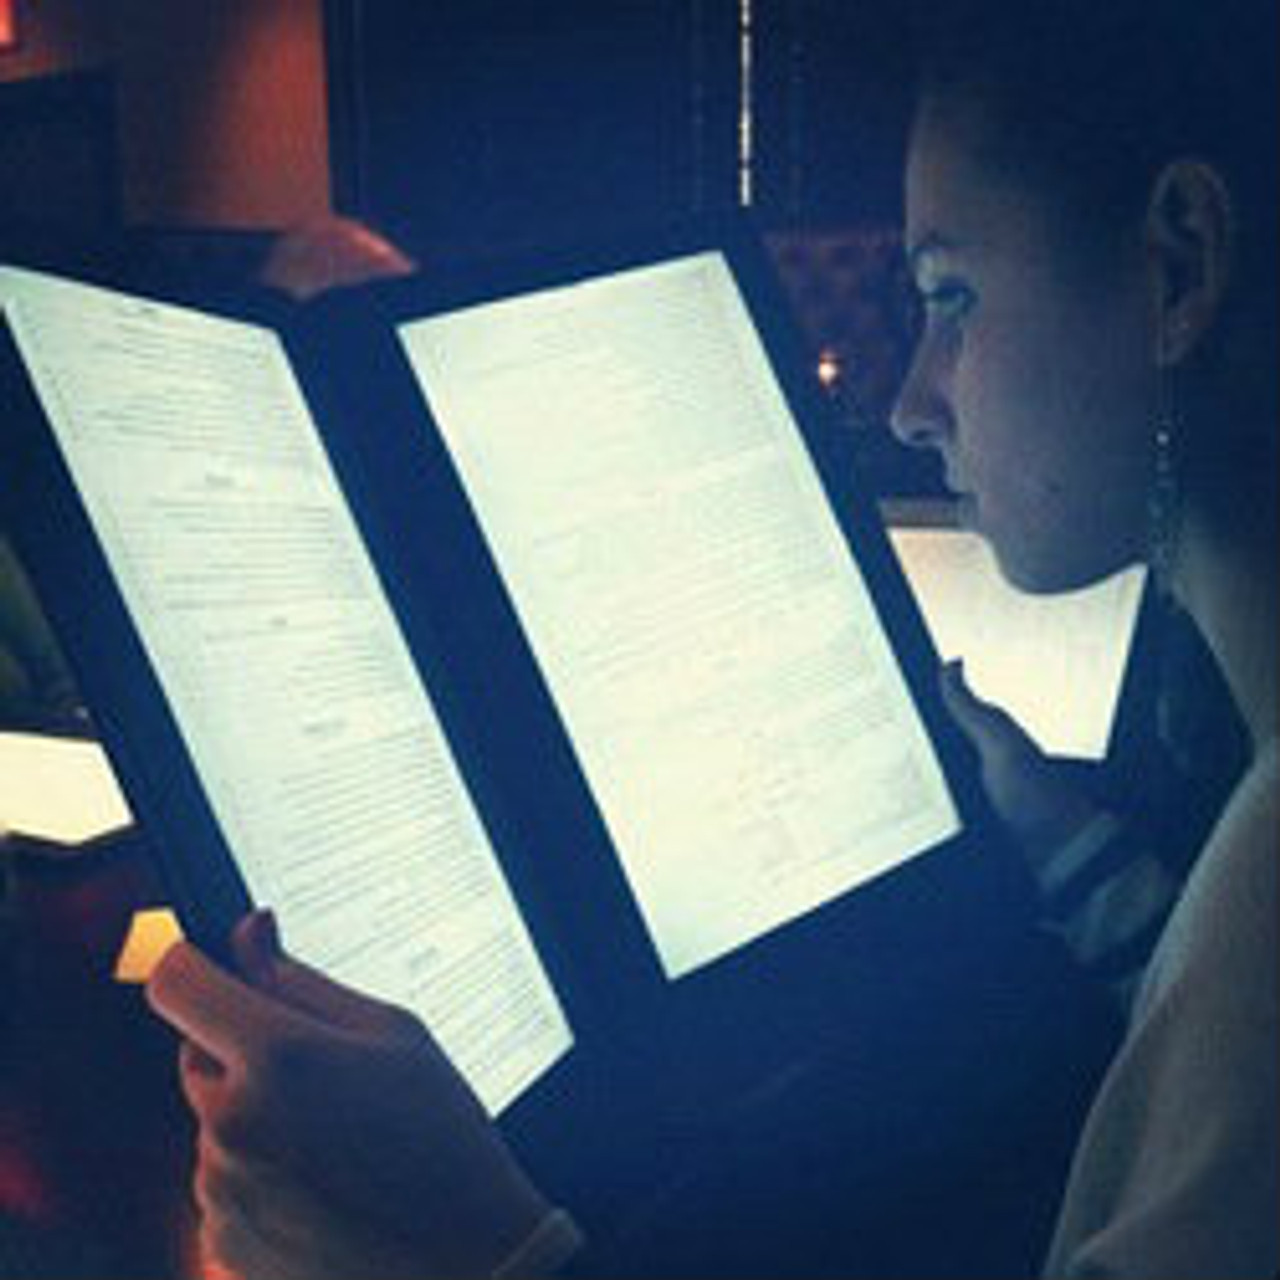 LED BACK LIT MENUS, LED MENUS, GLOW MENU,  back lit menu covers, check presenters, table stands, back lit menus, dine a light, glow in the dark, glowing menus, grandstand, led menus, light up menus, lighted menu, lit check presenters, lit menus, irridescent menu, illuminated menu, illuminati menu, glowing menu, uv menu, led design menu, designer menu, customized restaurant, custom, personalized menu